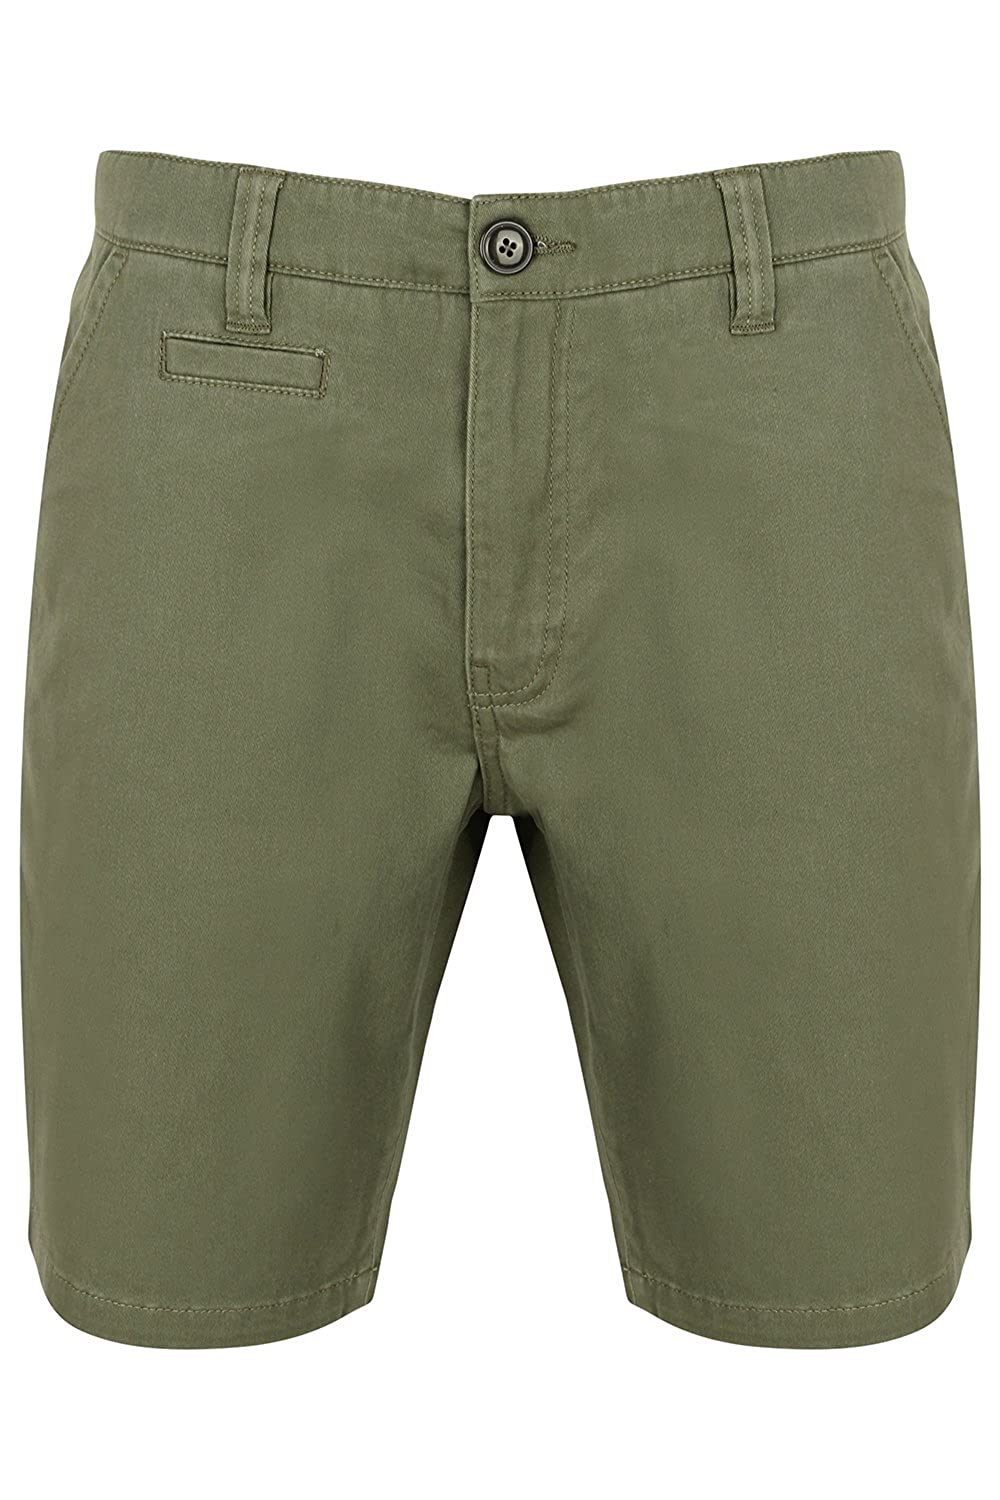 South Shore Mens Scotch Shorts